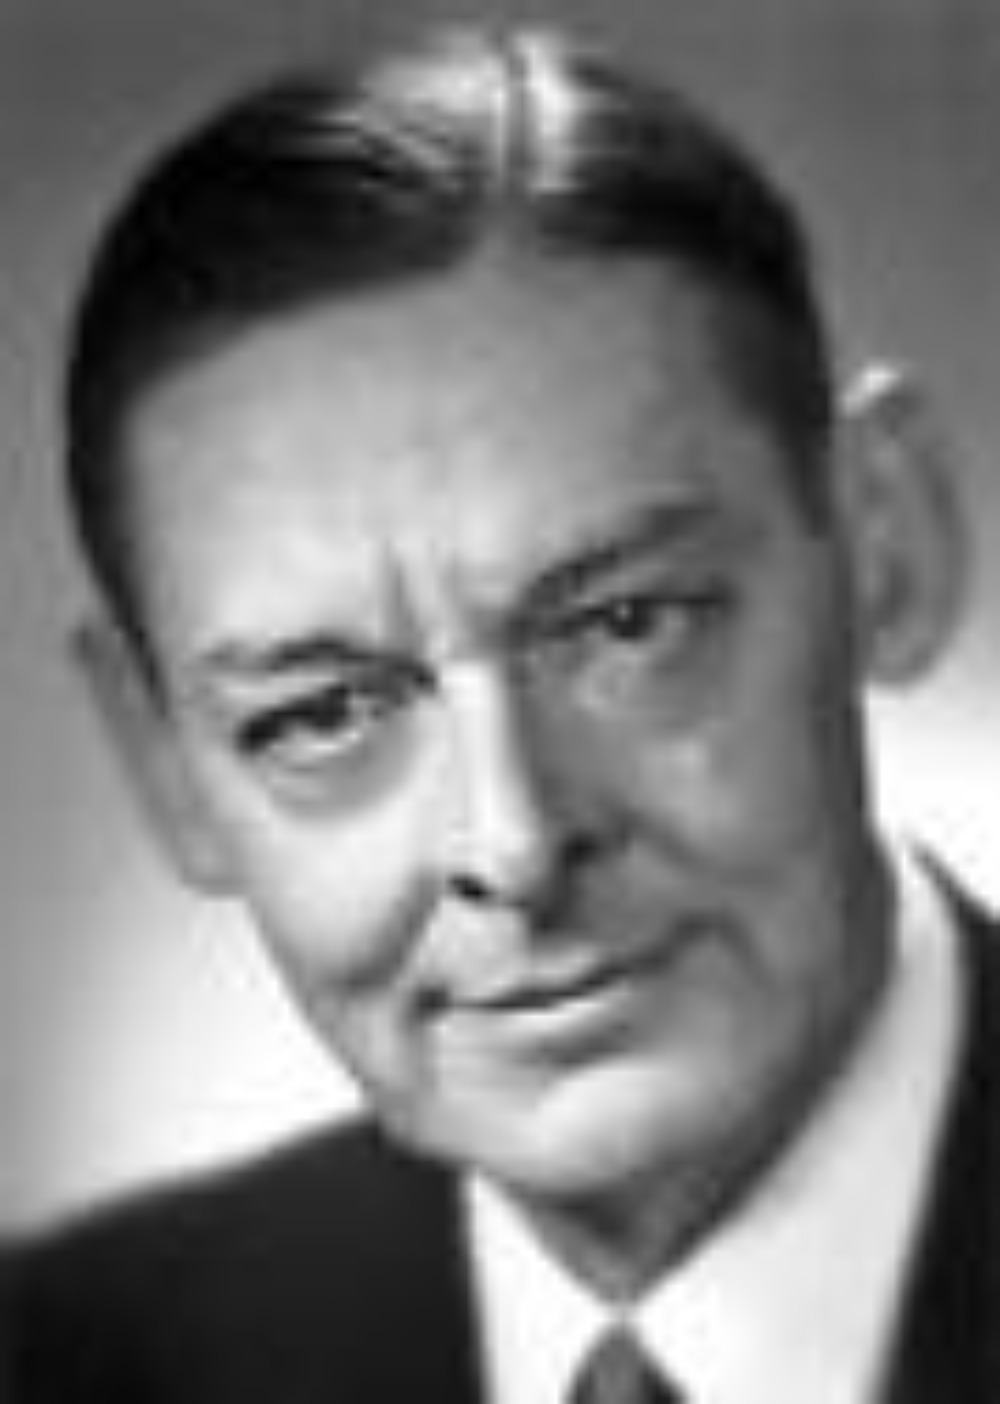 t s eliot essay tradition and the individual talent << homework t s eliot essay tradition and the individual talent